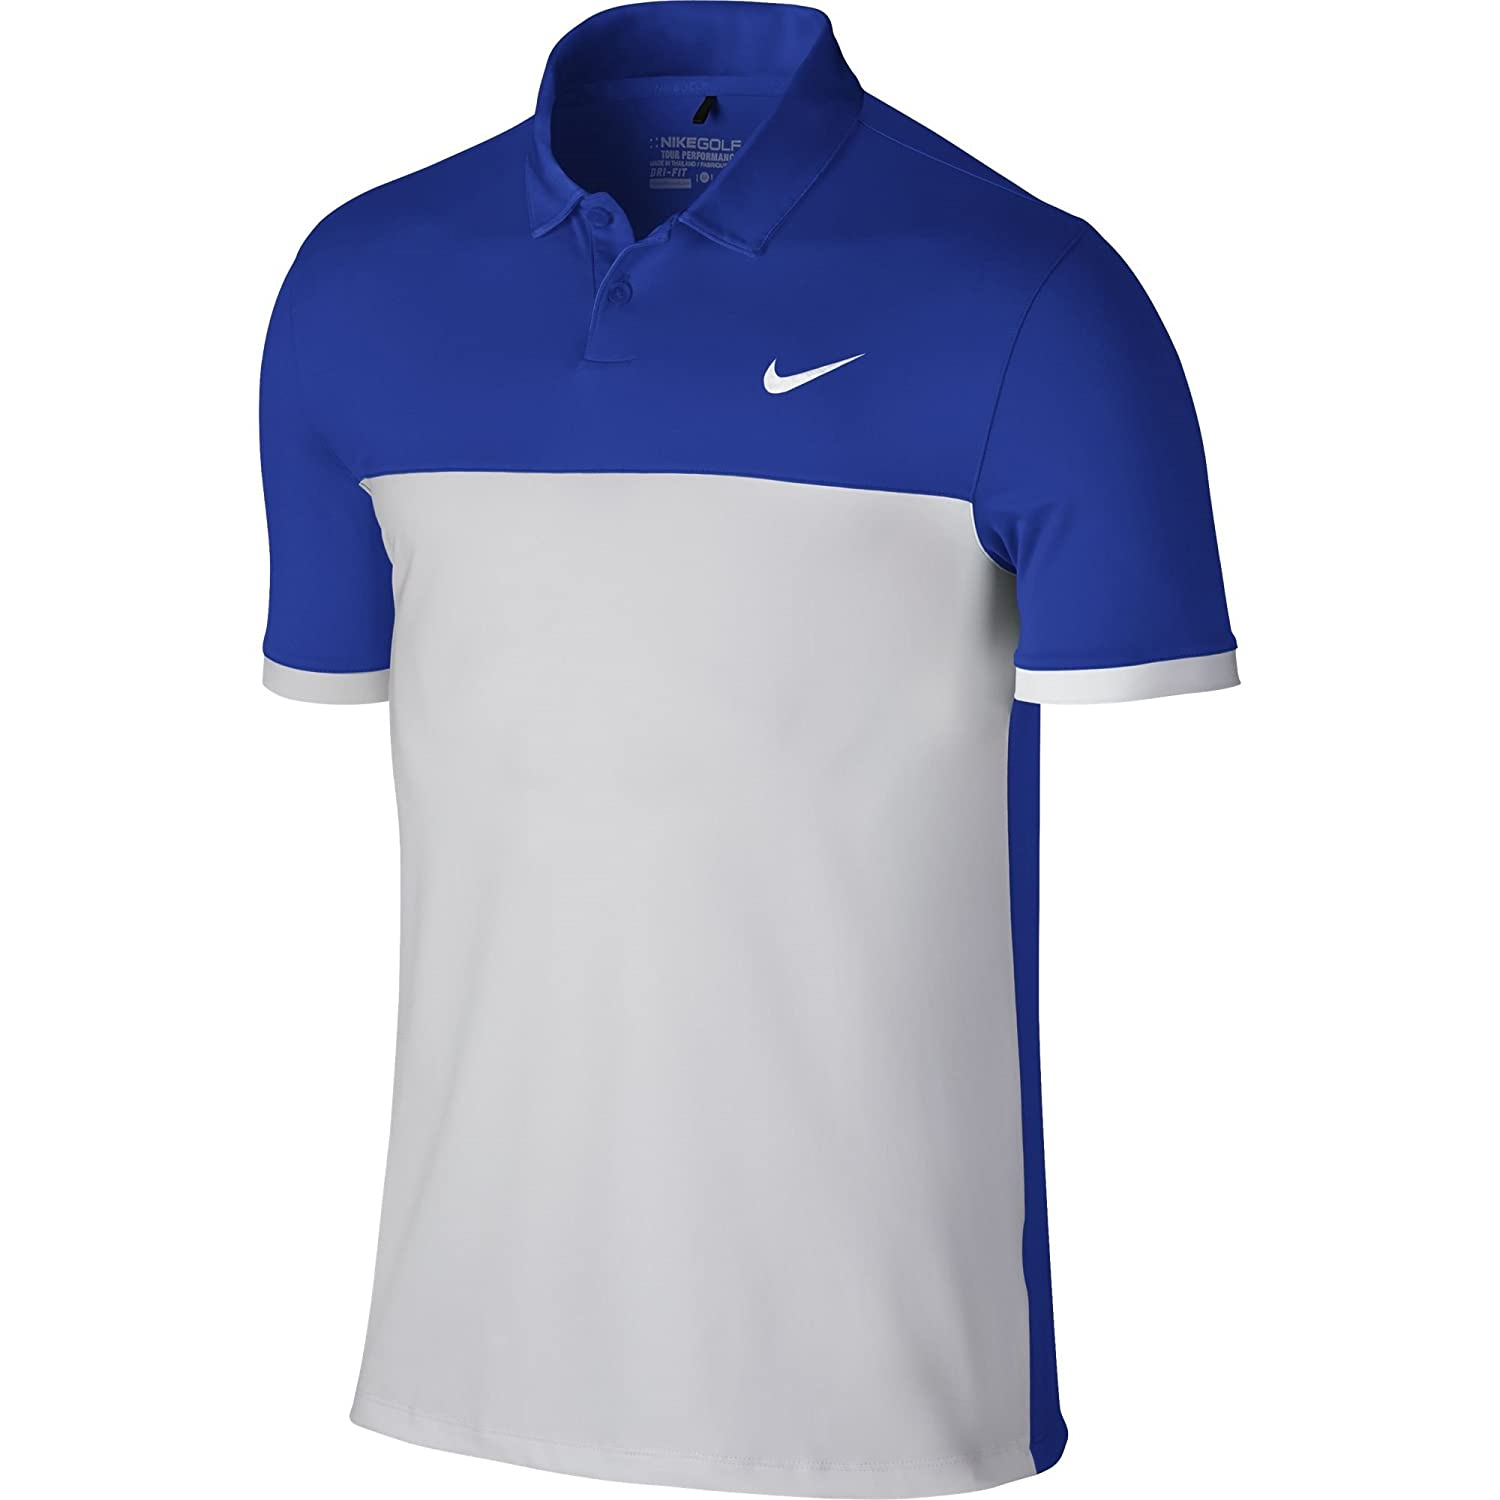 86bd12e69d Nike Golf CLOSEOUT Men s Icon Color Block Polo (Game Royal White)  725527-480 (X-Large) at Amazon Men s Clothing store